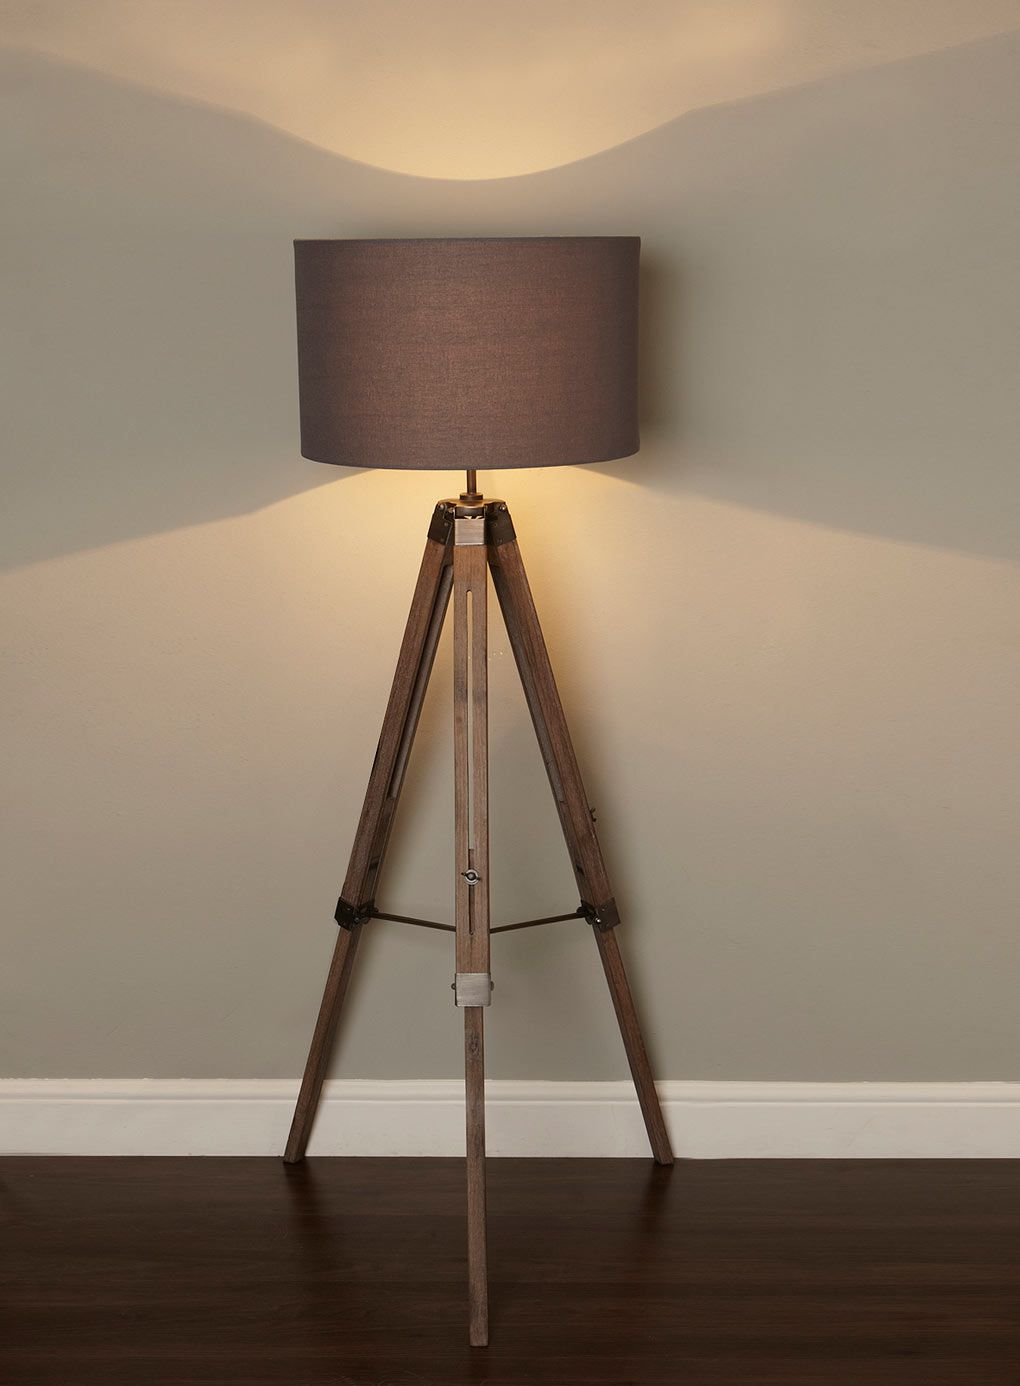 Harley Tripod Floor Lamp Can Be Adjusted In Hight Plus Has Light Going Both Directions